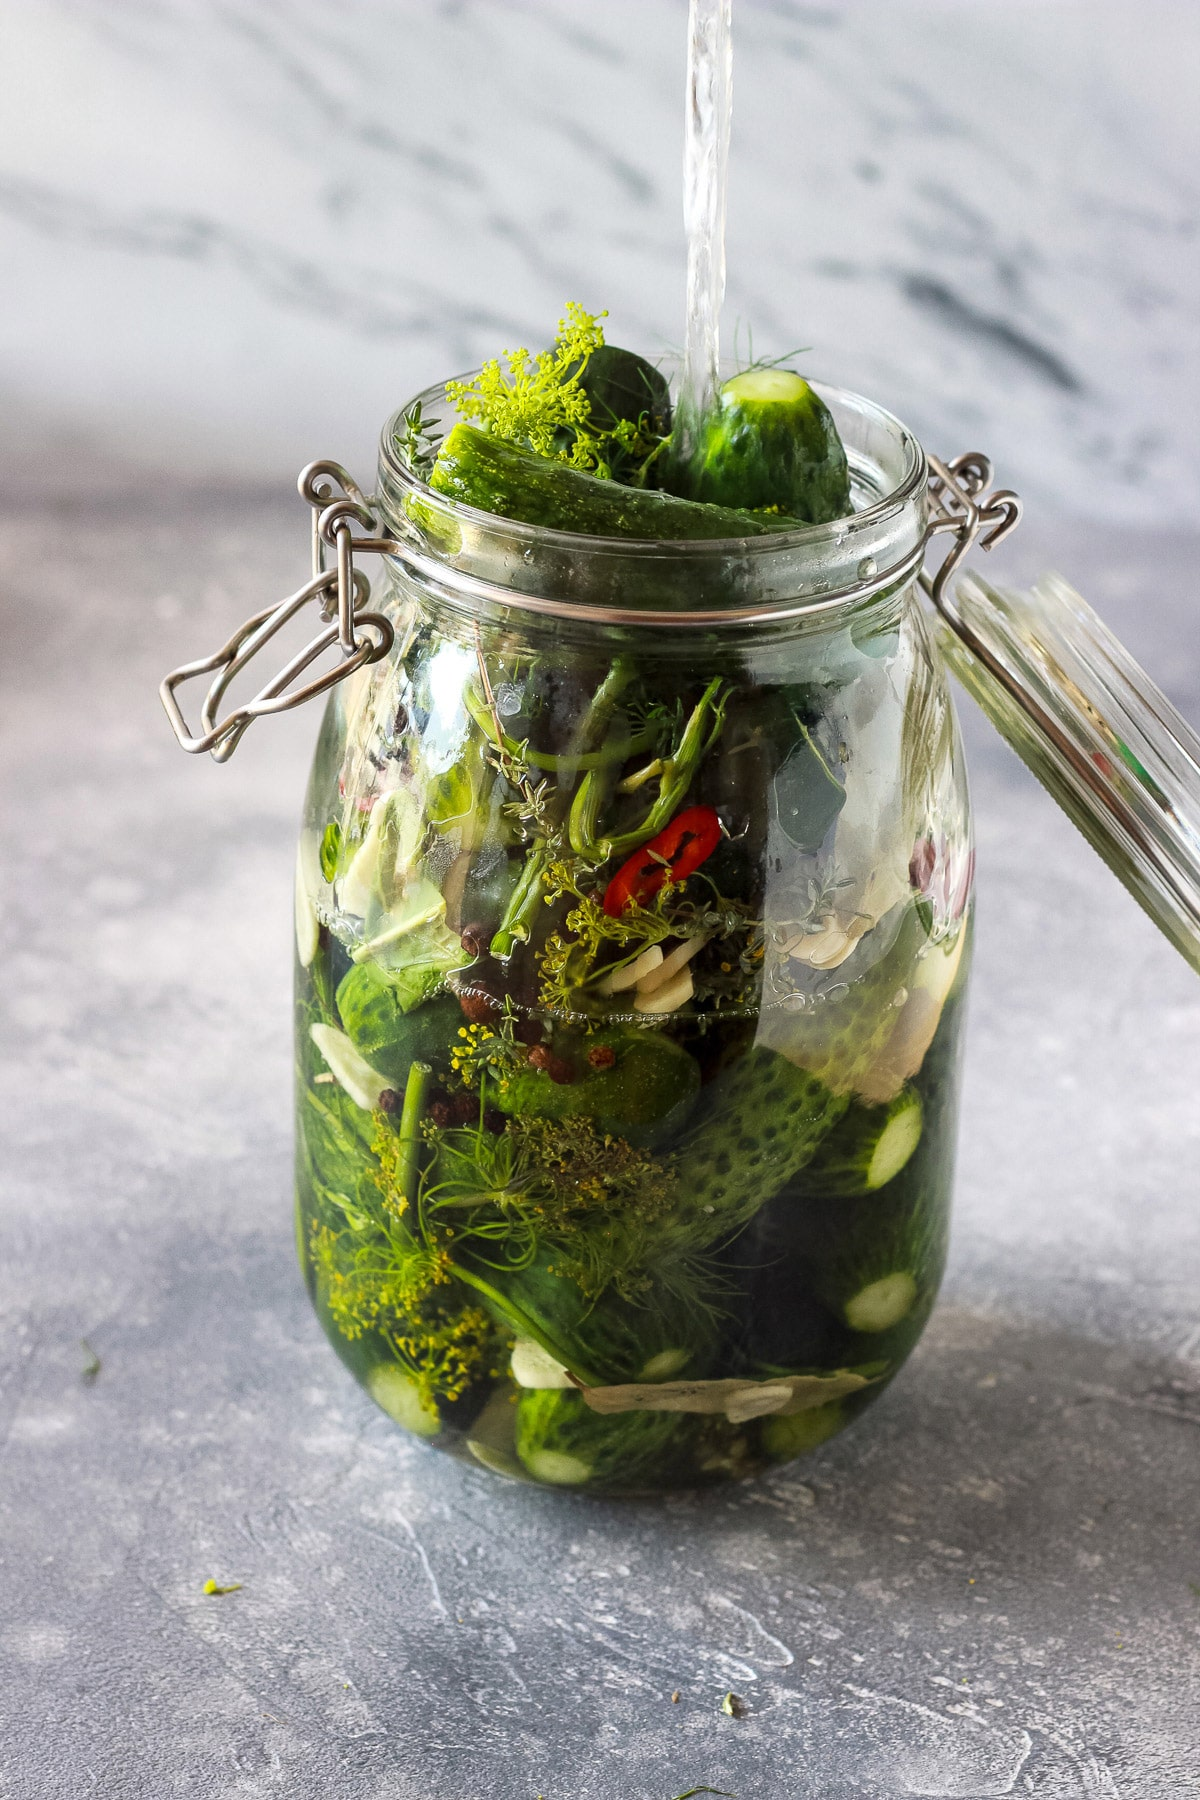 Pouring brine into a jar with cucumbers